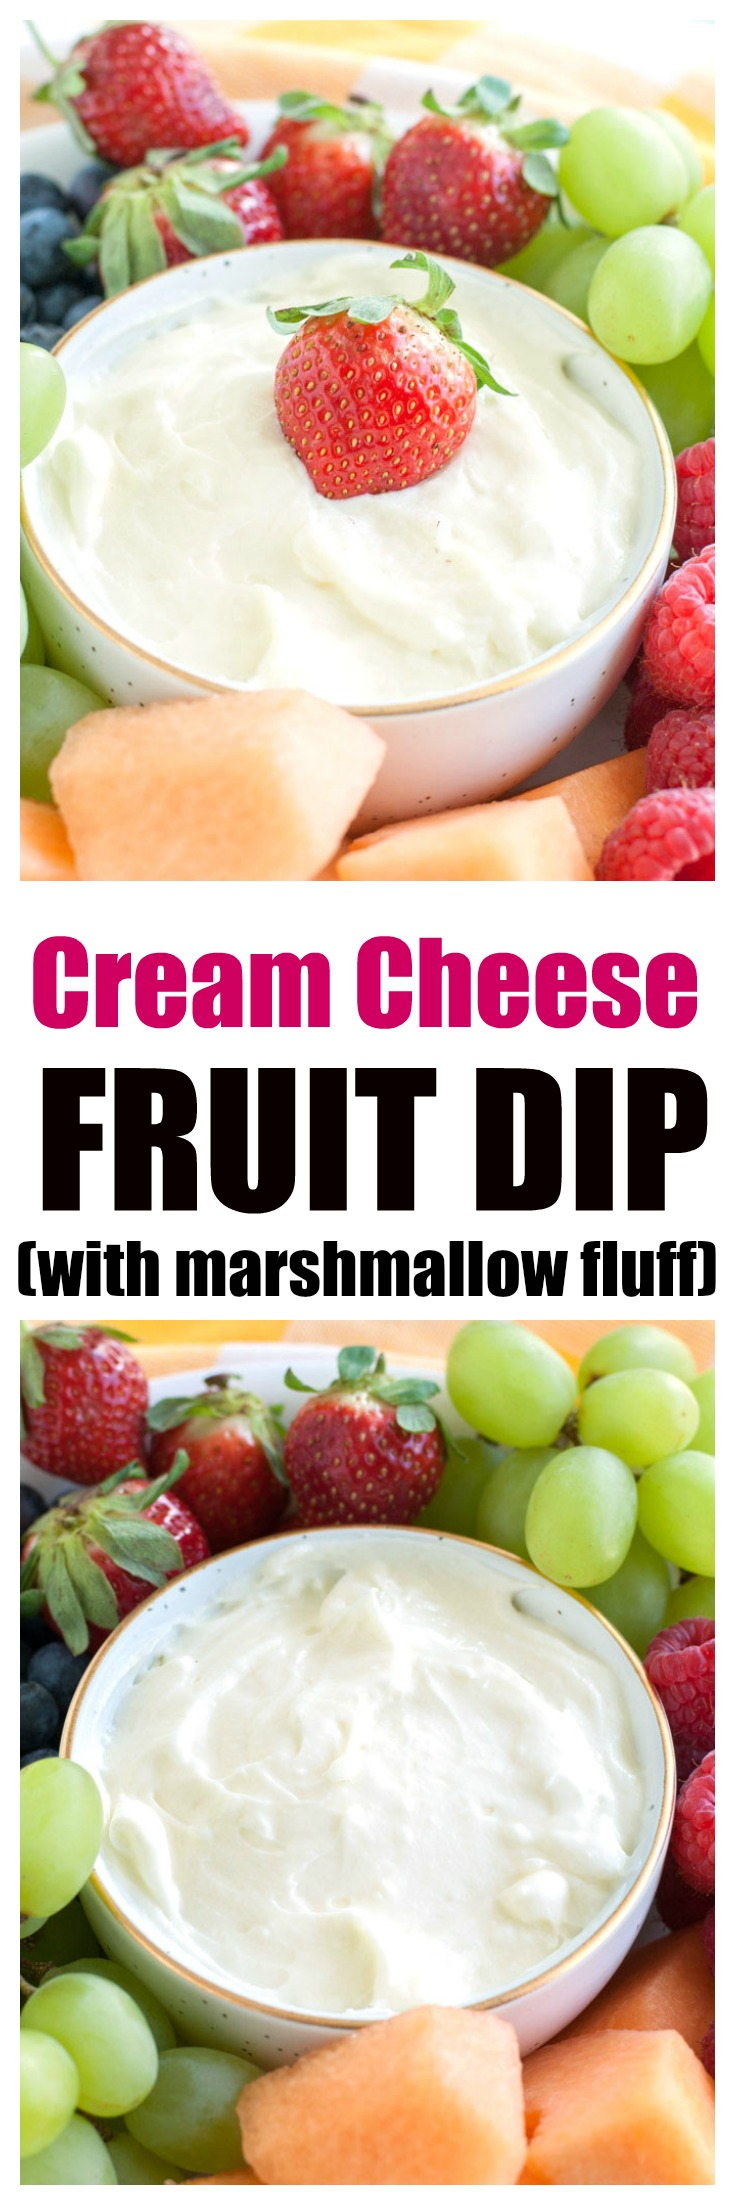 Cream Cheese Fruit Dip - simple dip using 3 ingredients. Perfect for a party, holiday or easy snack. #fruitdip #creamcheesefruitdip #dip #marshmallowfluff